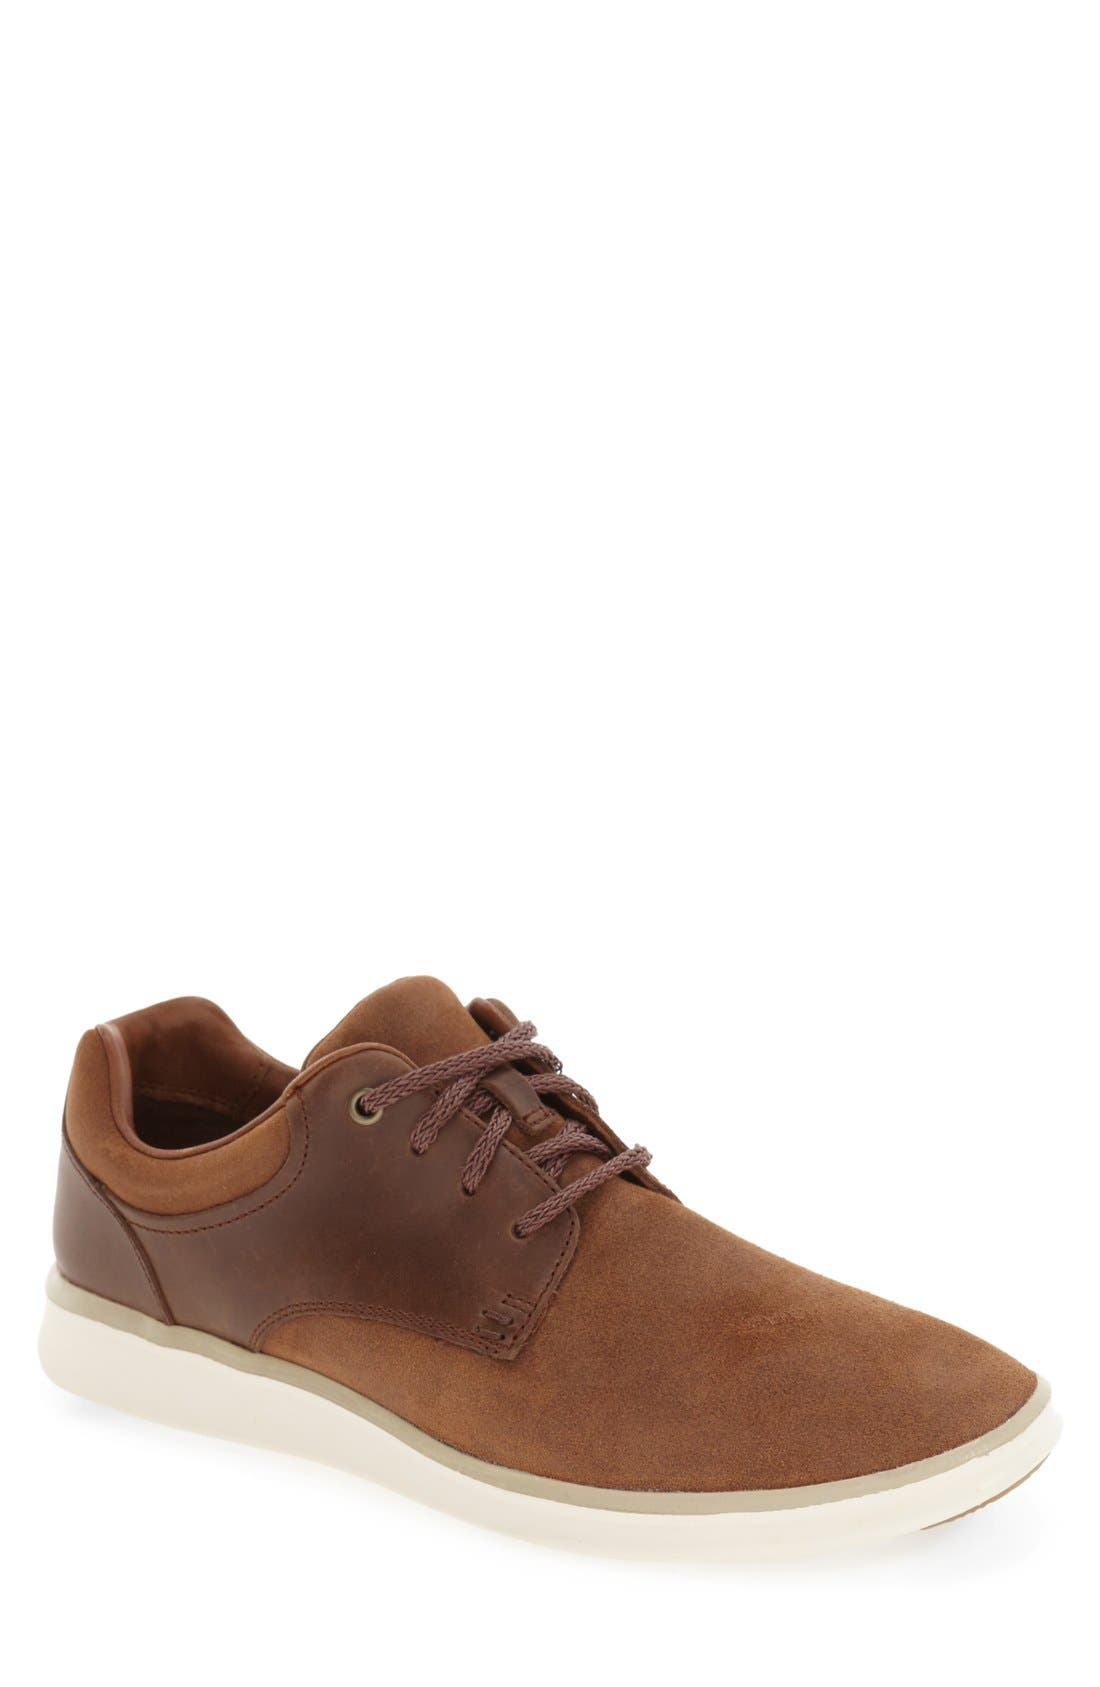 'Hepner' Sneaker,                         Main,                         color, Chestnut